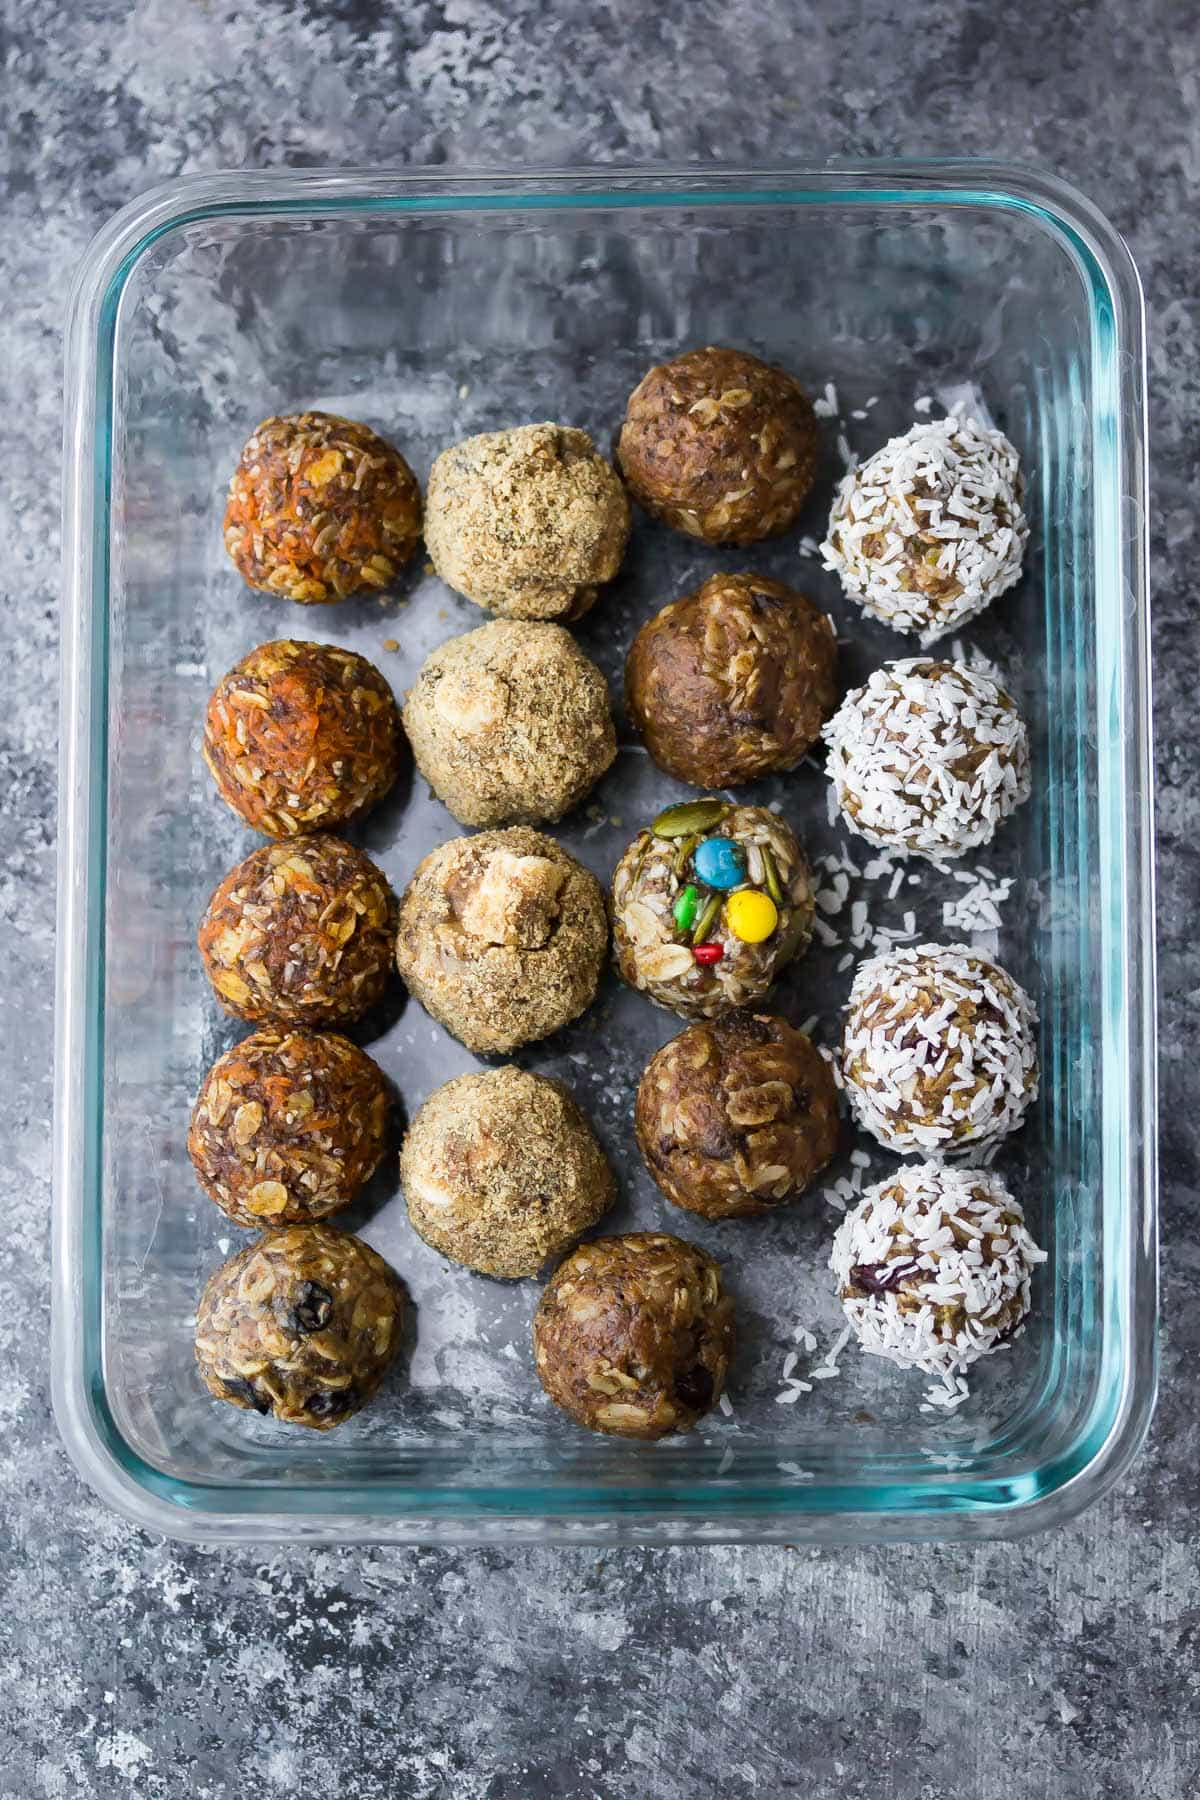 Types of energy bites in the oven in a food preparation container